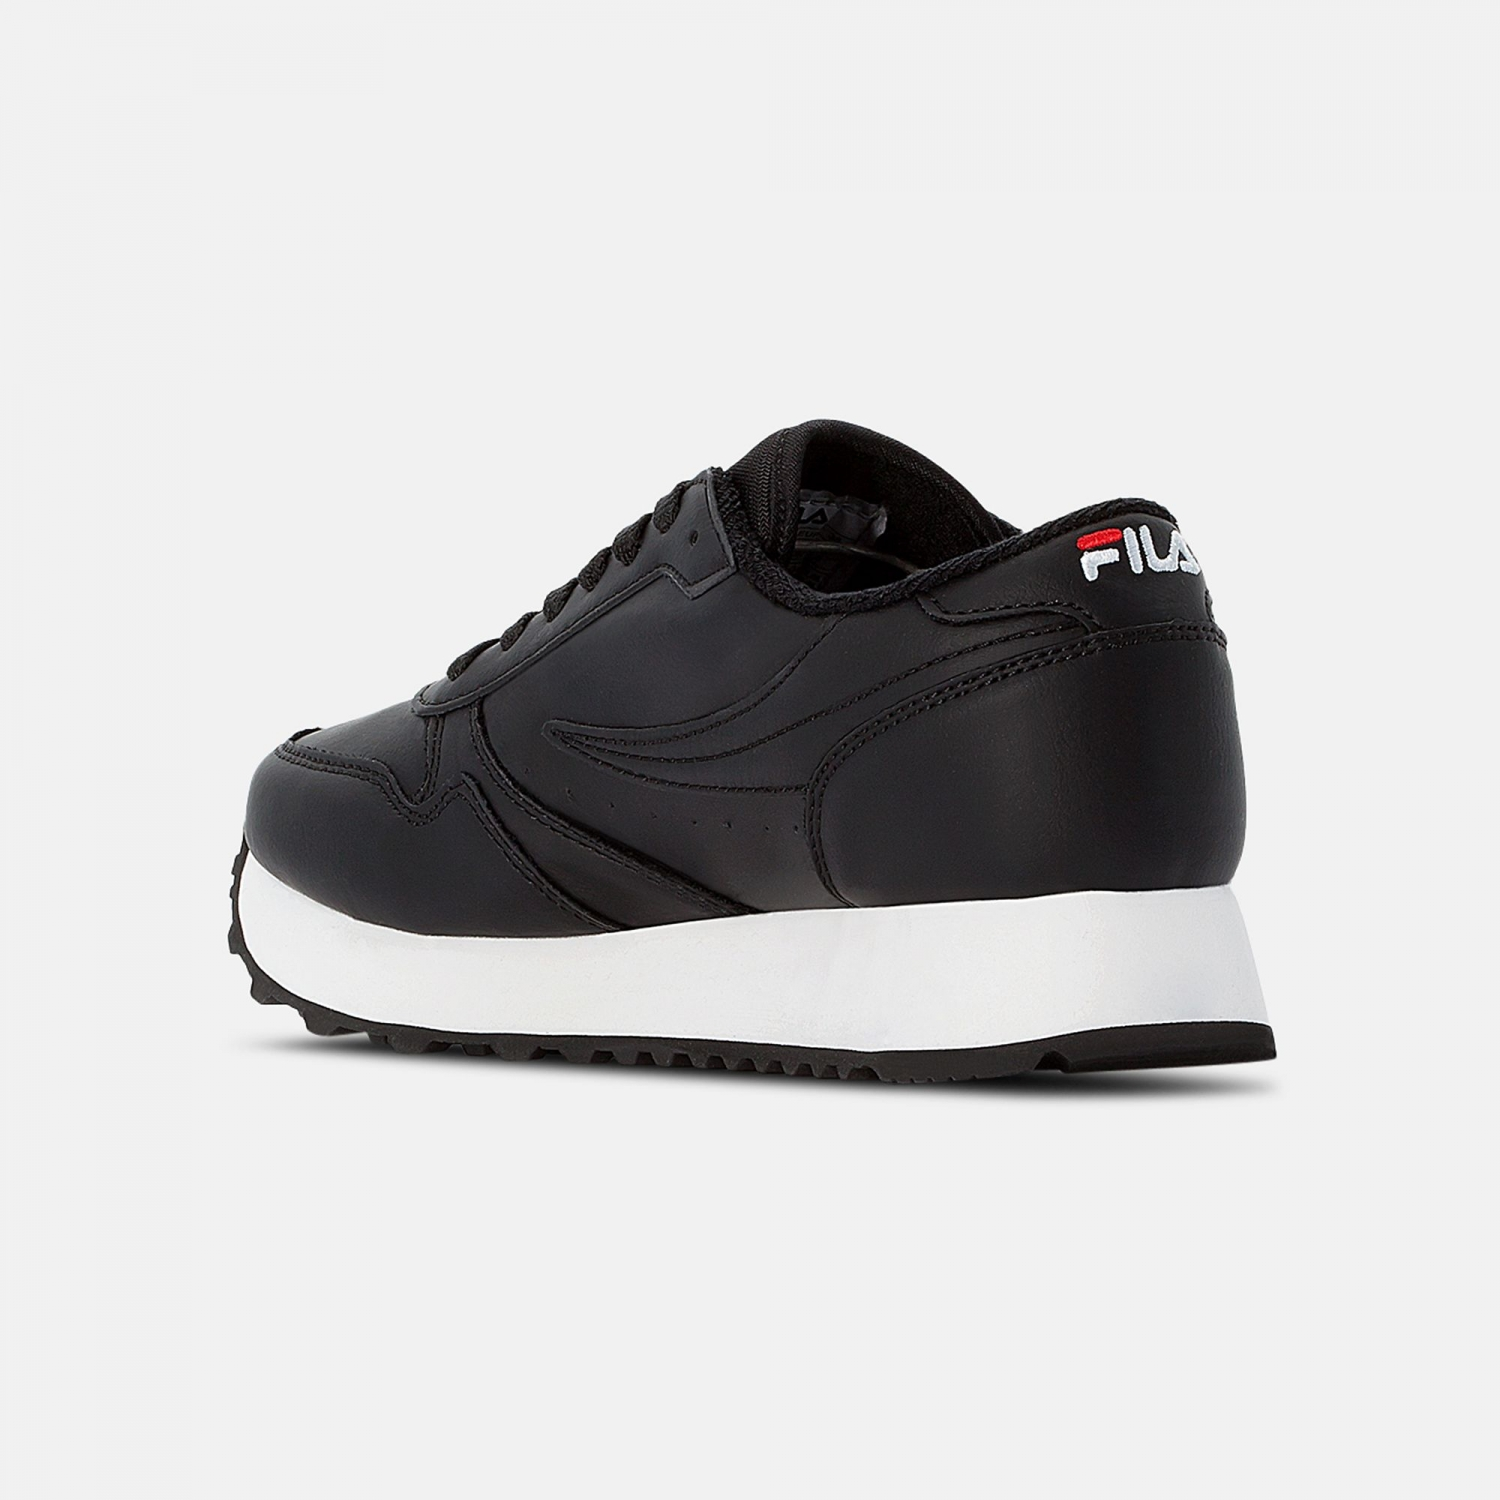 Fila Orbit Zeppa L Wmn black Bild 3